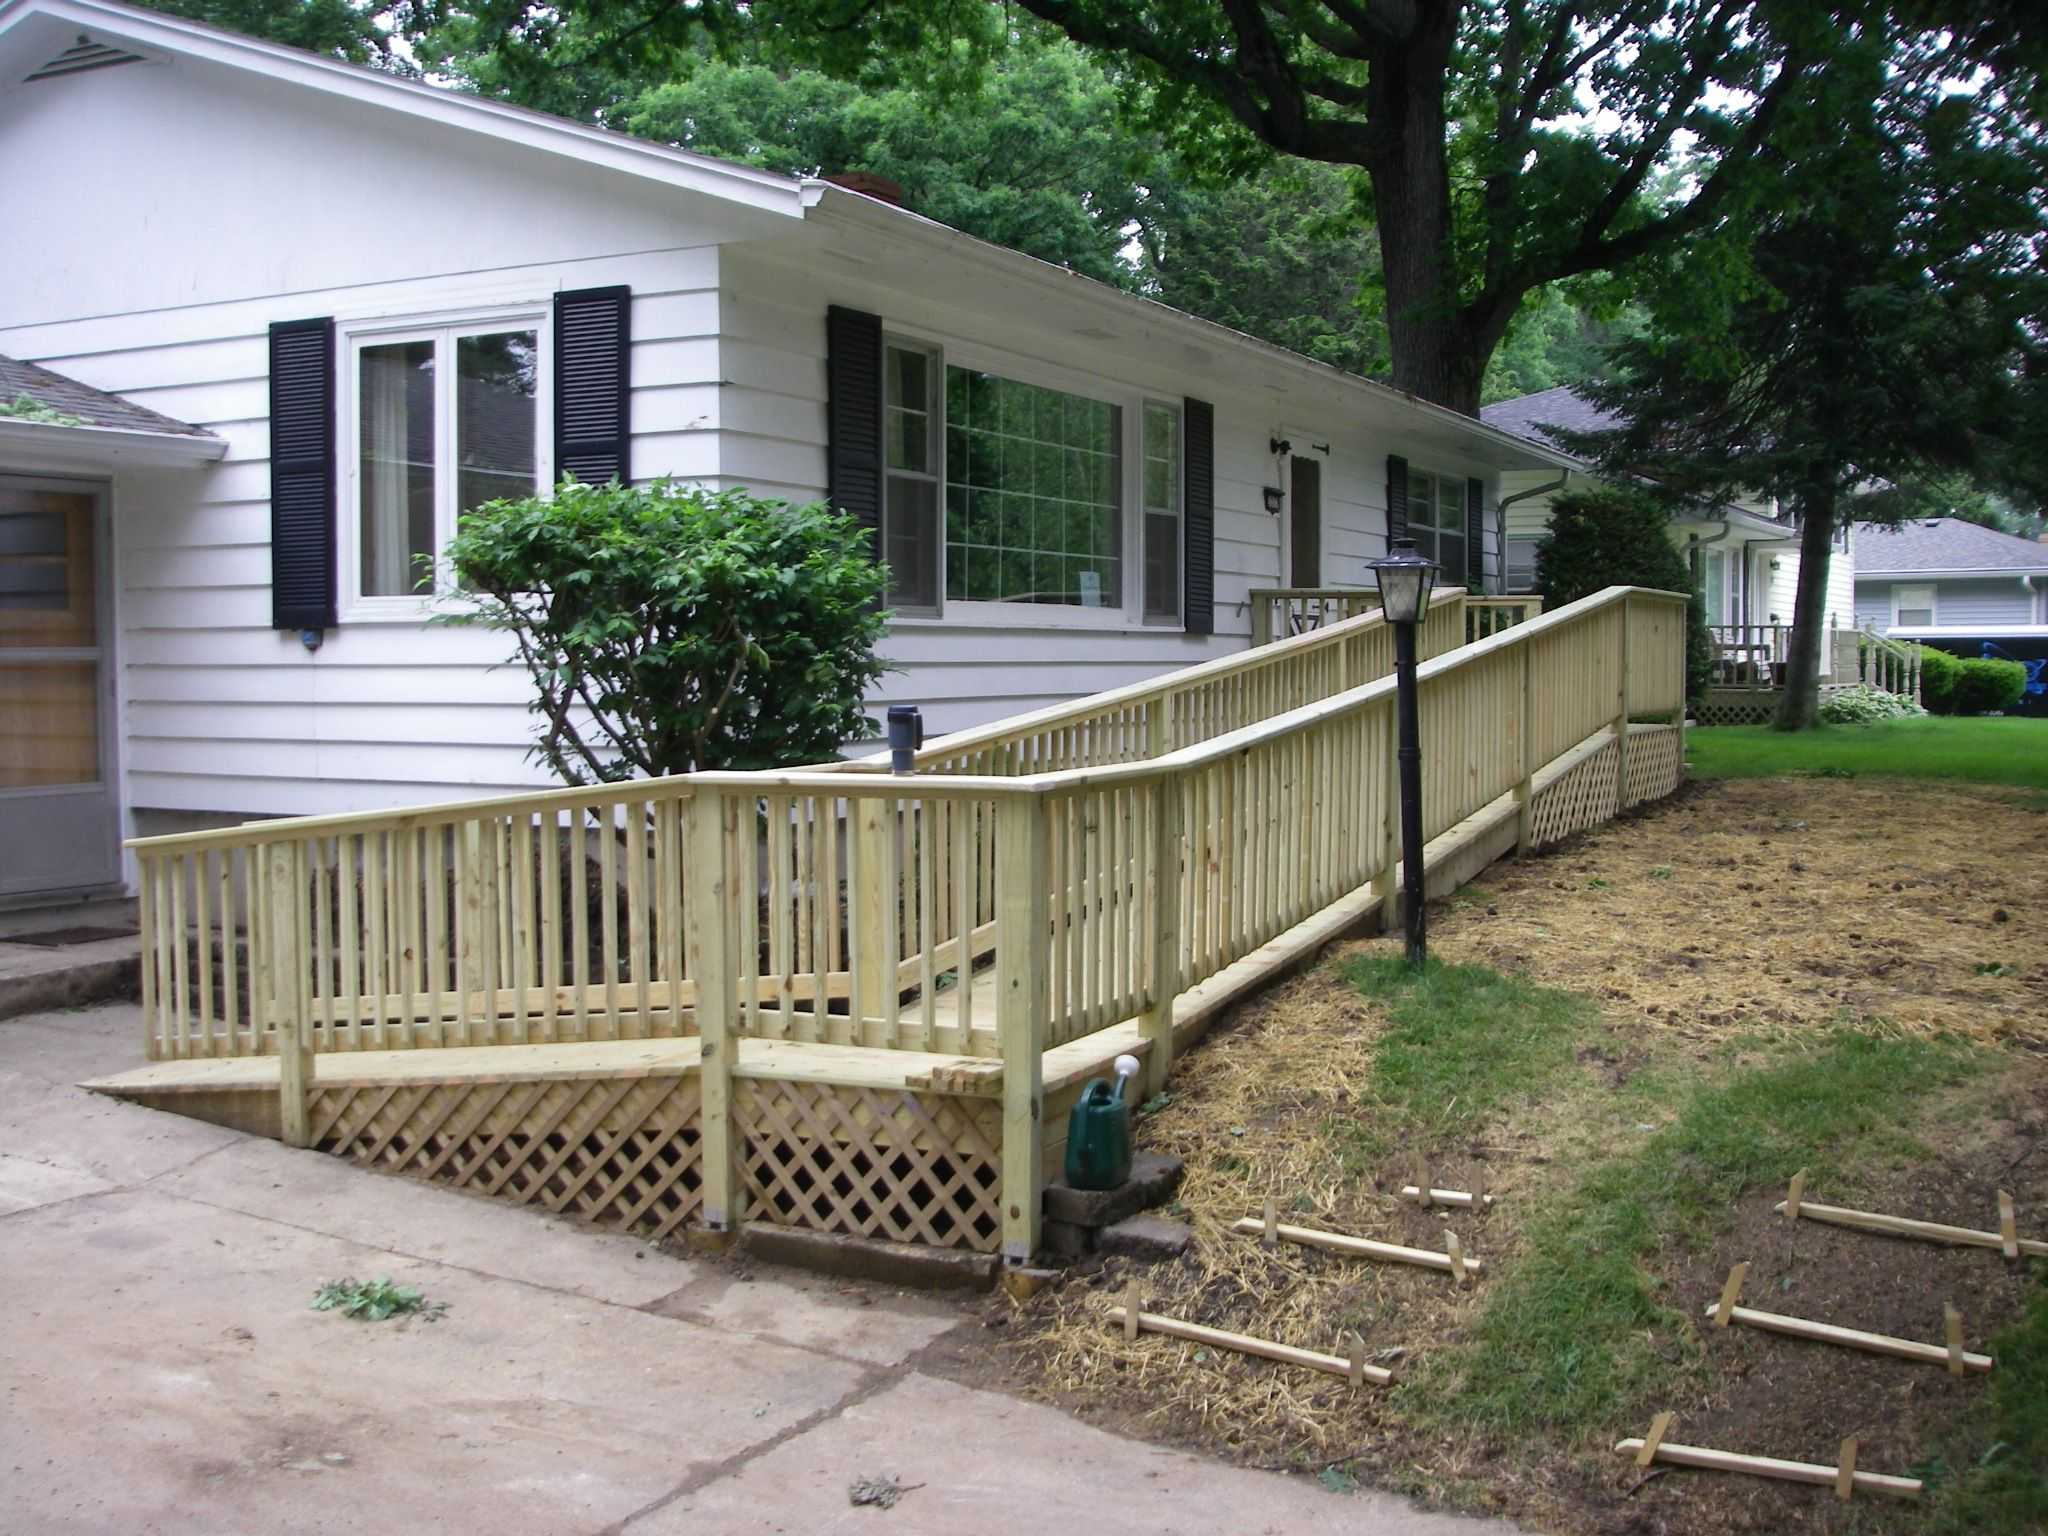 Ramp Project Home Minor Home Repair Madison WI 53716